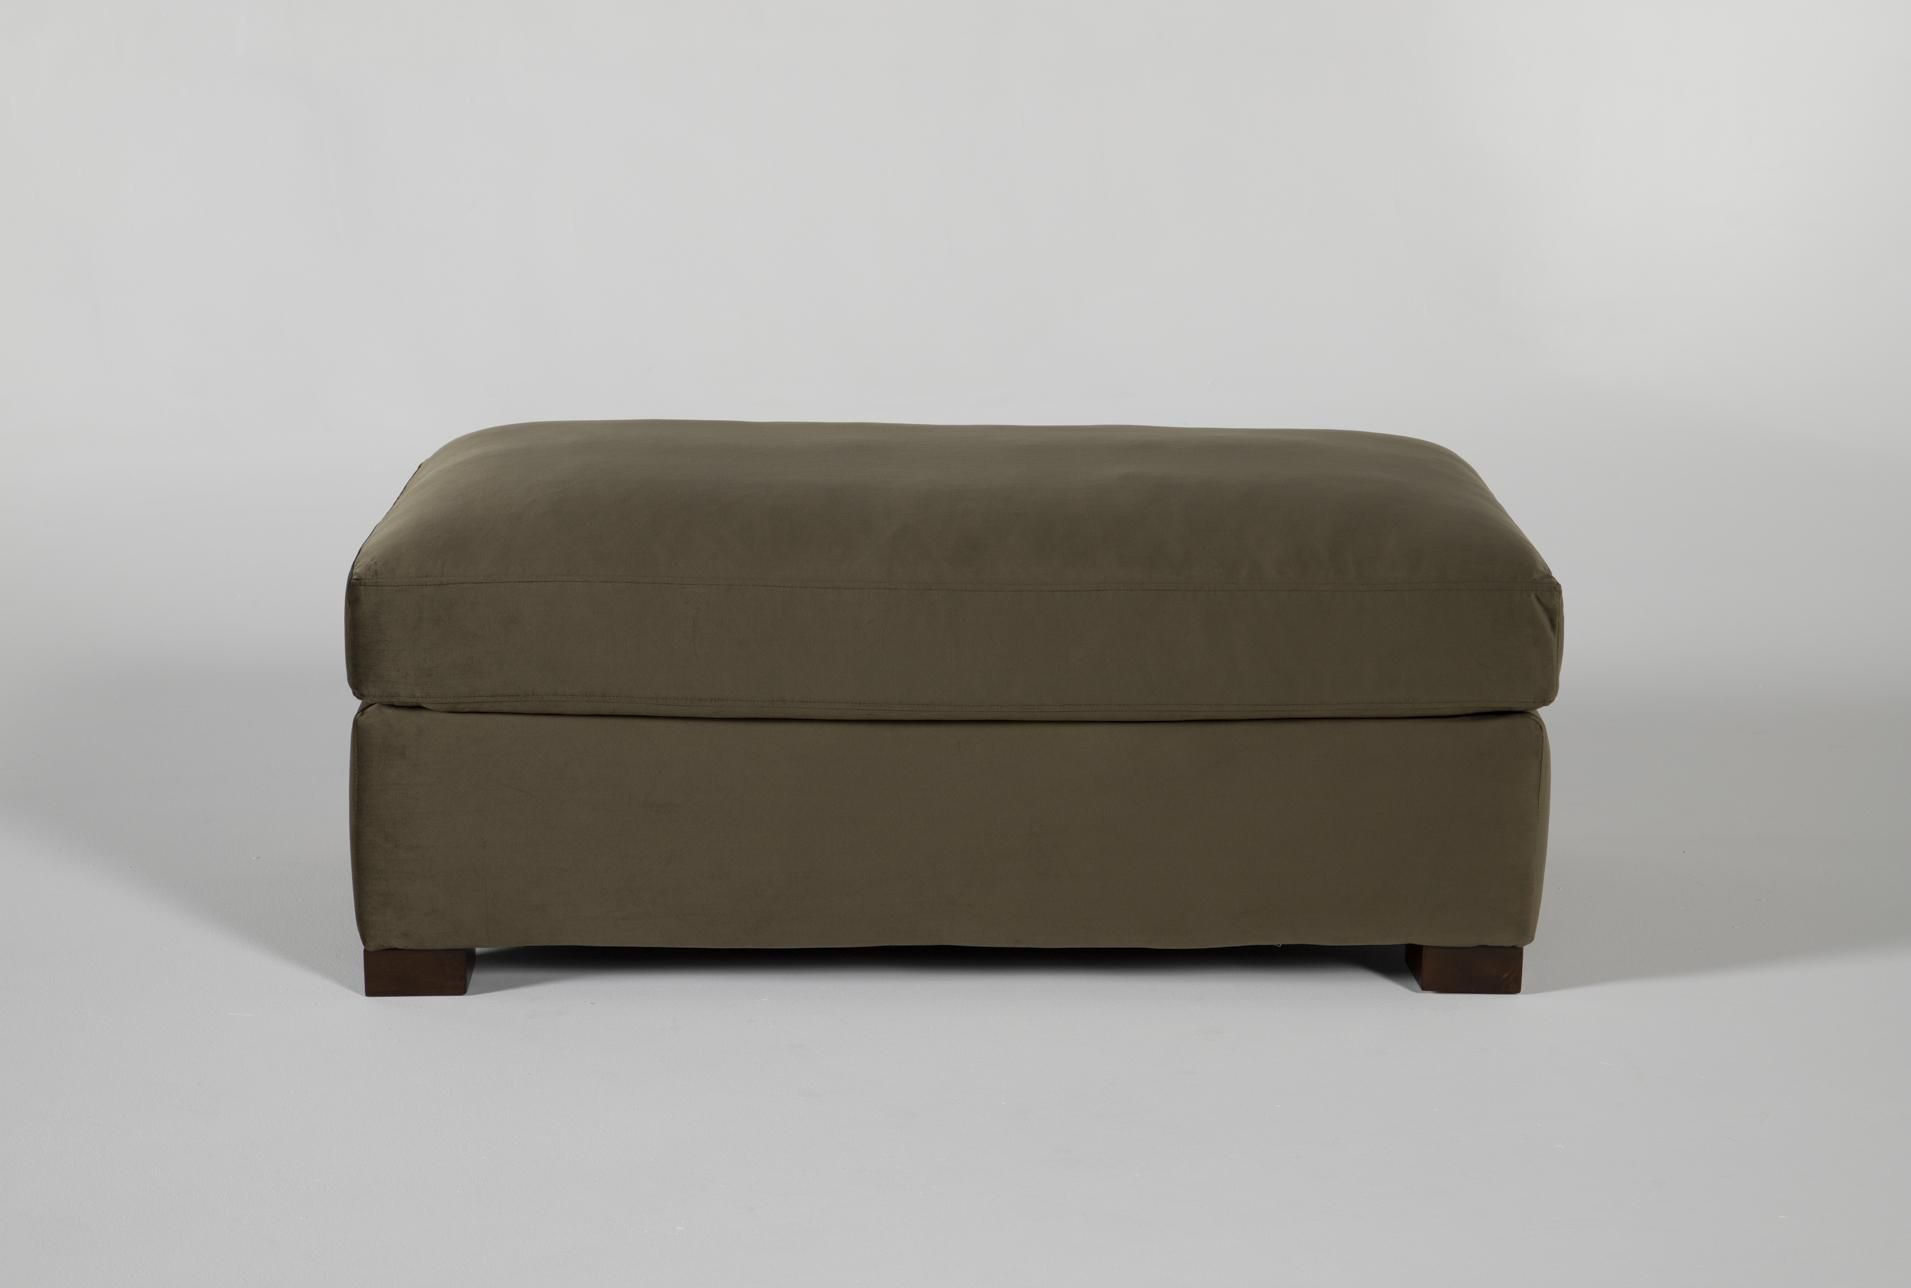 Magnolia Home Walden Luxe Moss Ottoman By Joanna Gaines - Green - $349 #magnolia...